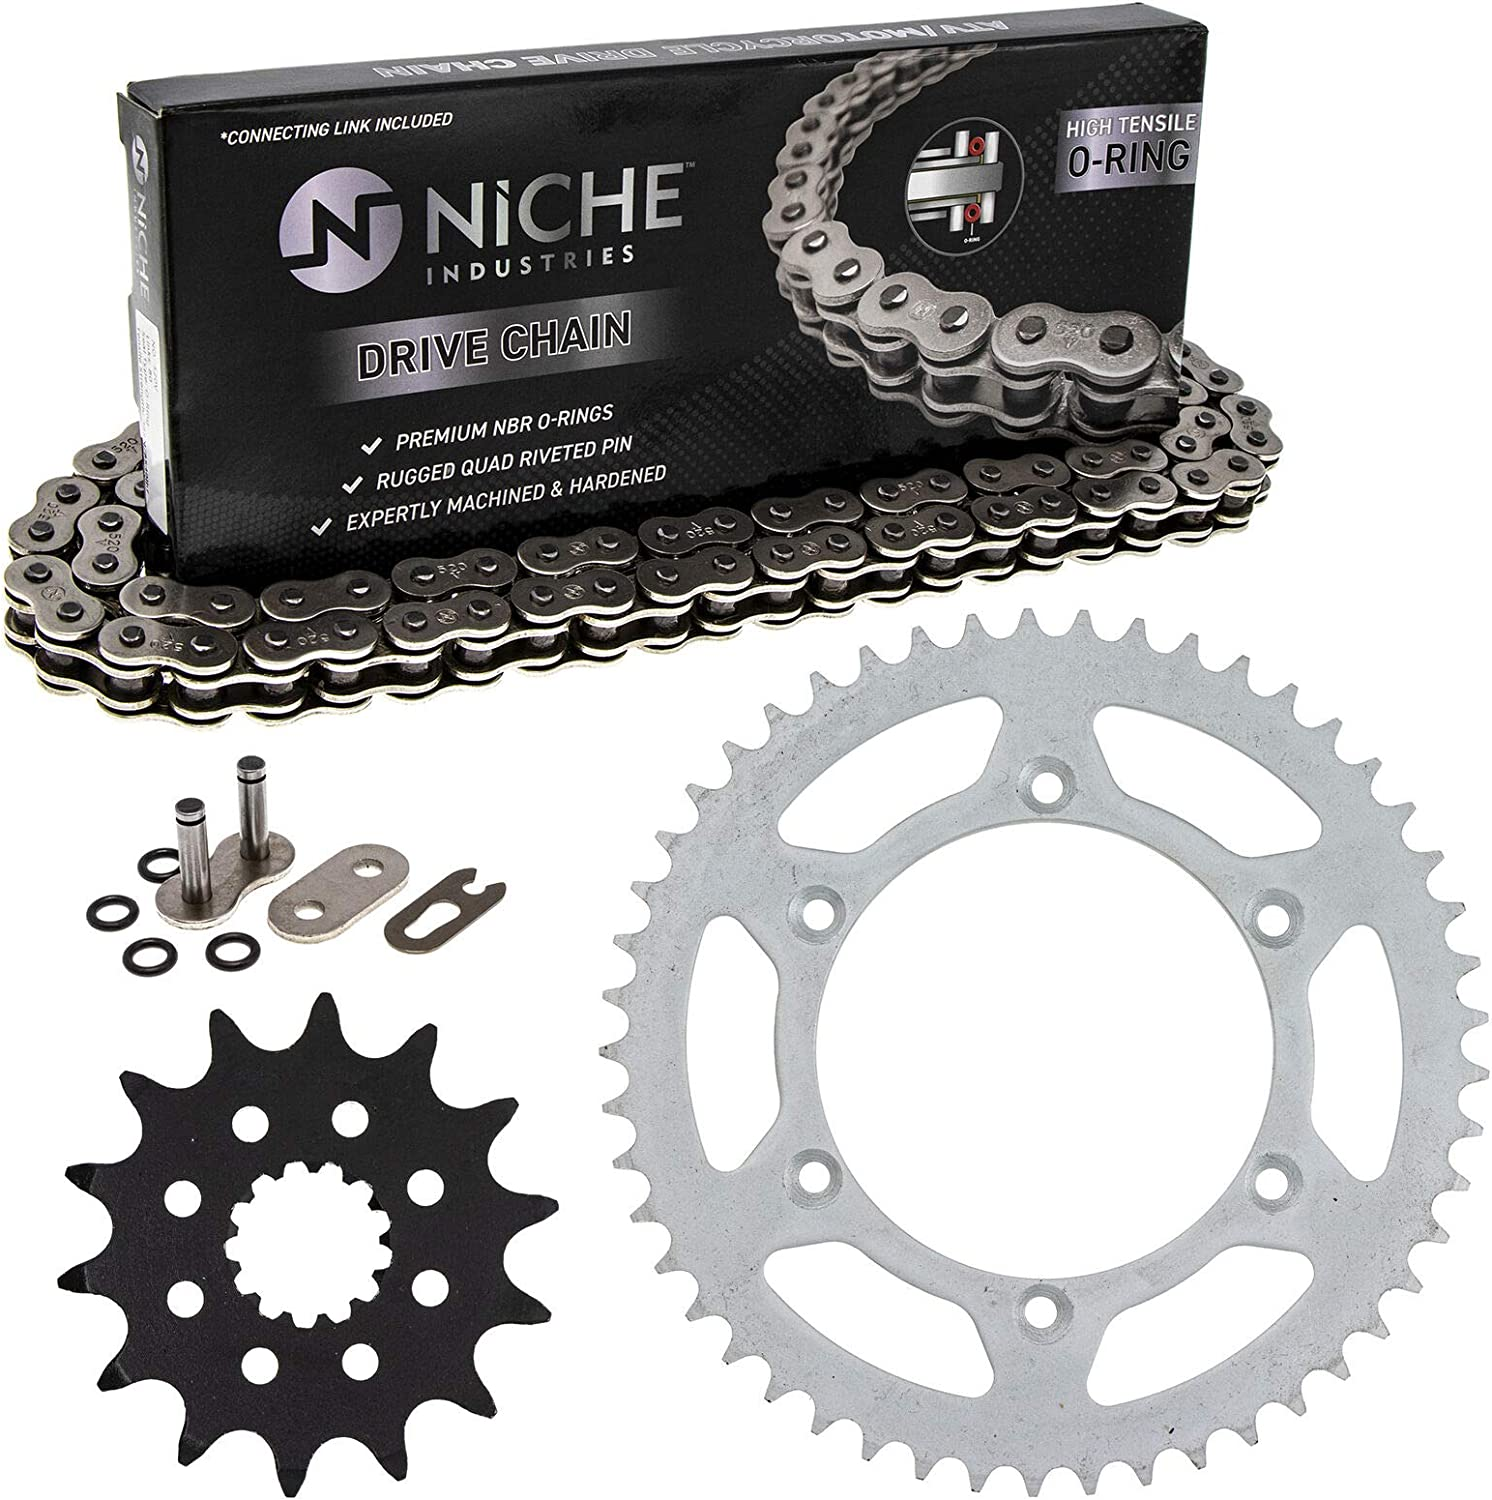 IMS Factory outlet 1 Set of Sprocket Chain YZ250 Yamaha with YZ400F Compatible Same day shipping